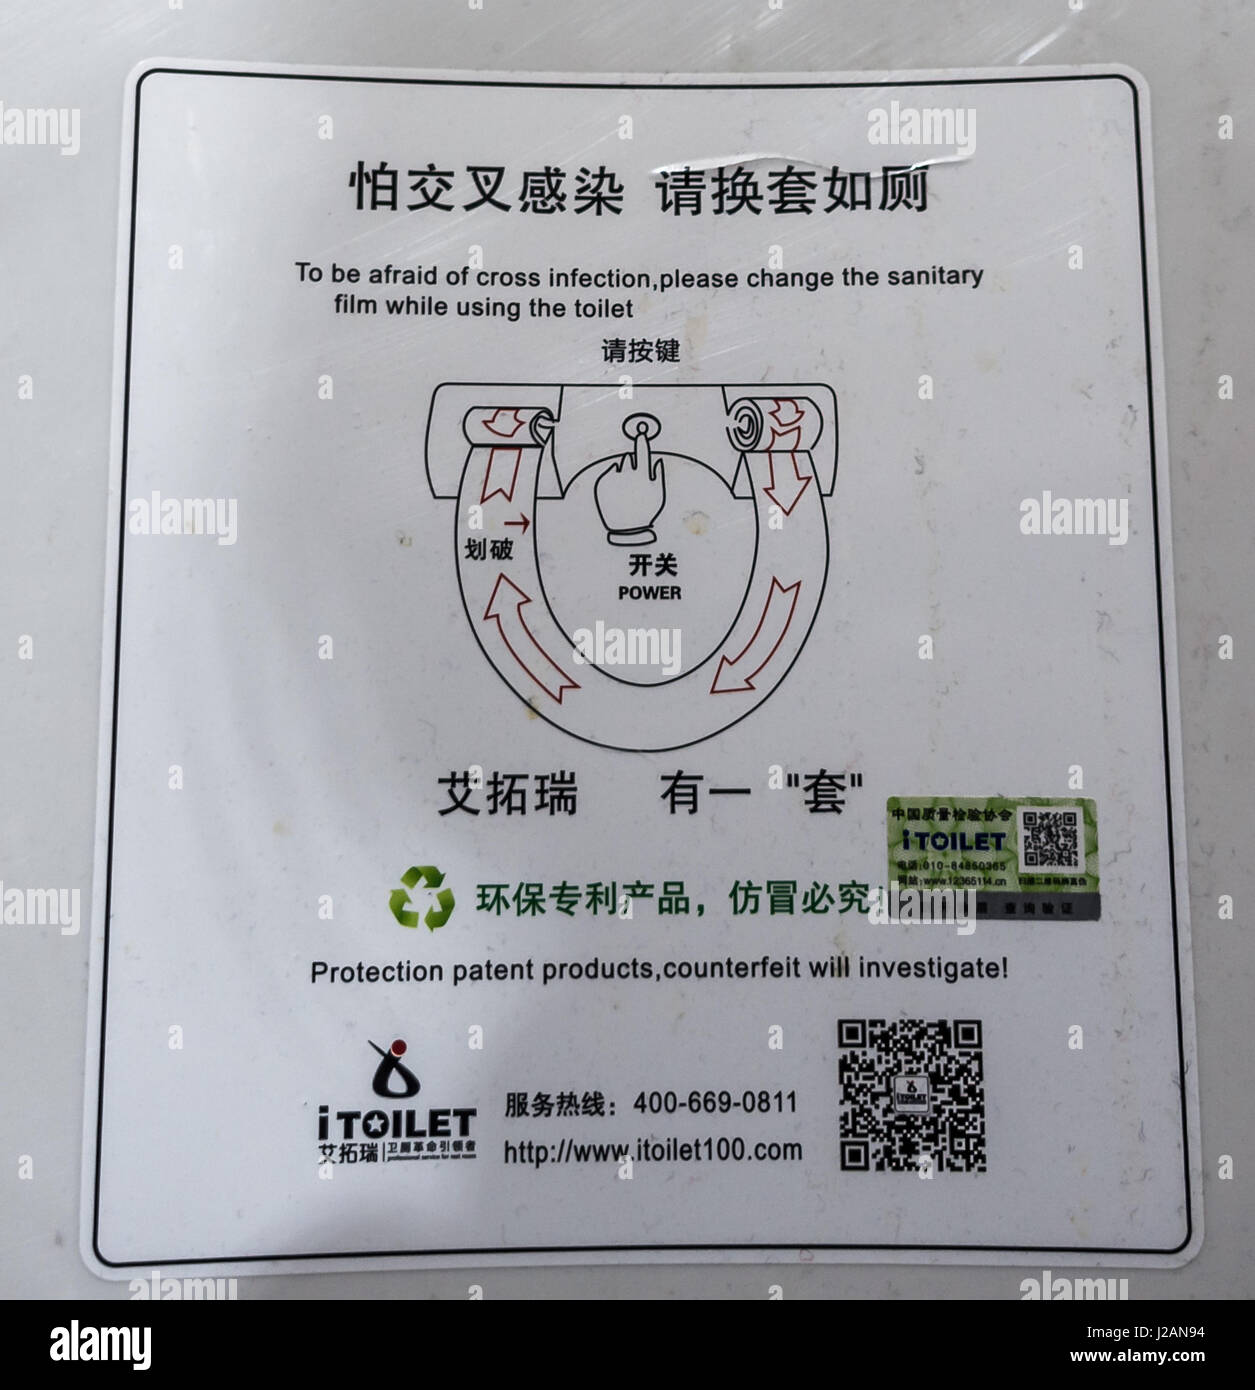 Funny Chinglish Toilet Instructions Sign For Self Cleaning Toilet